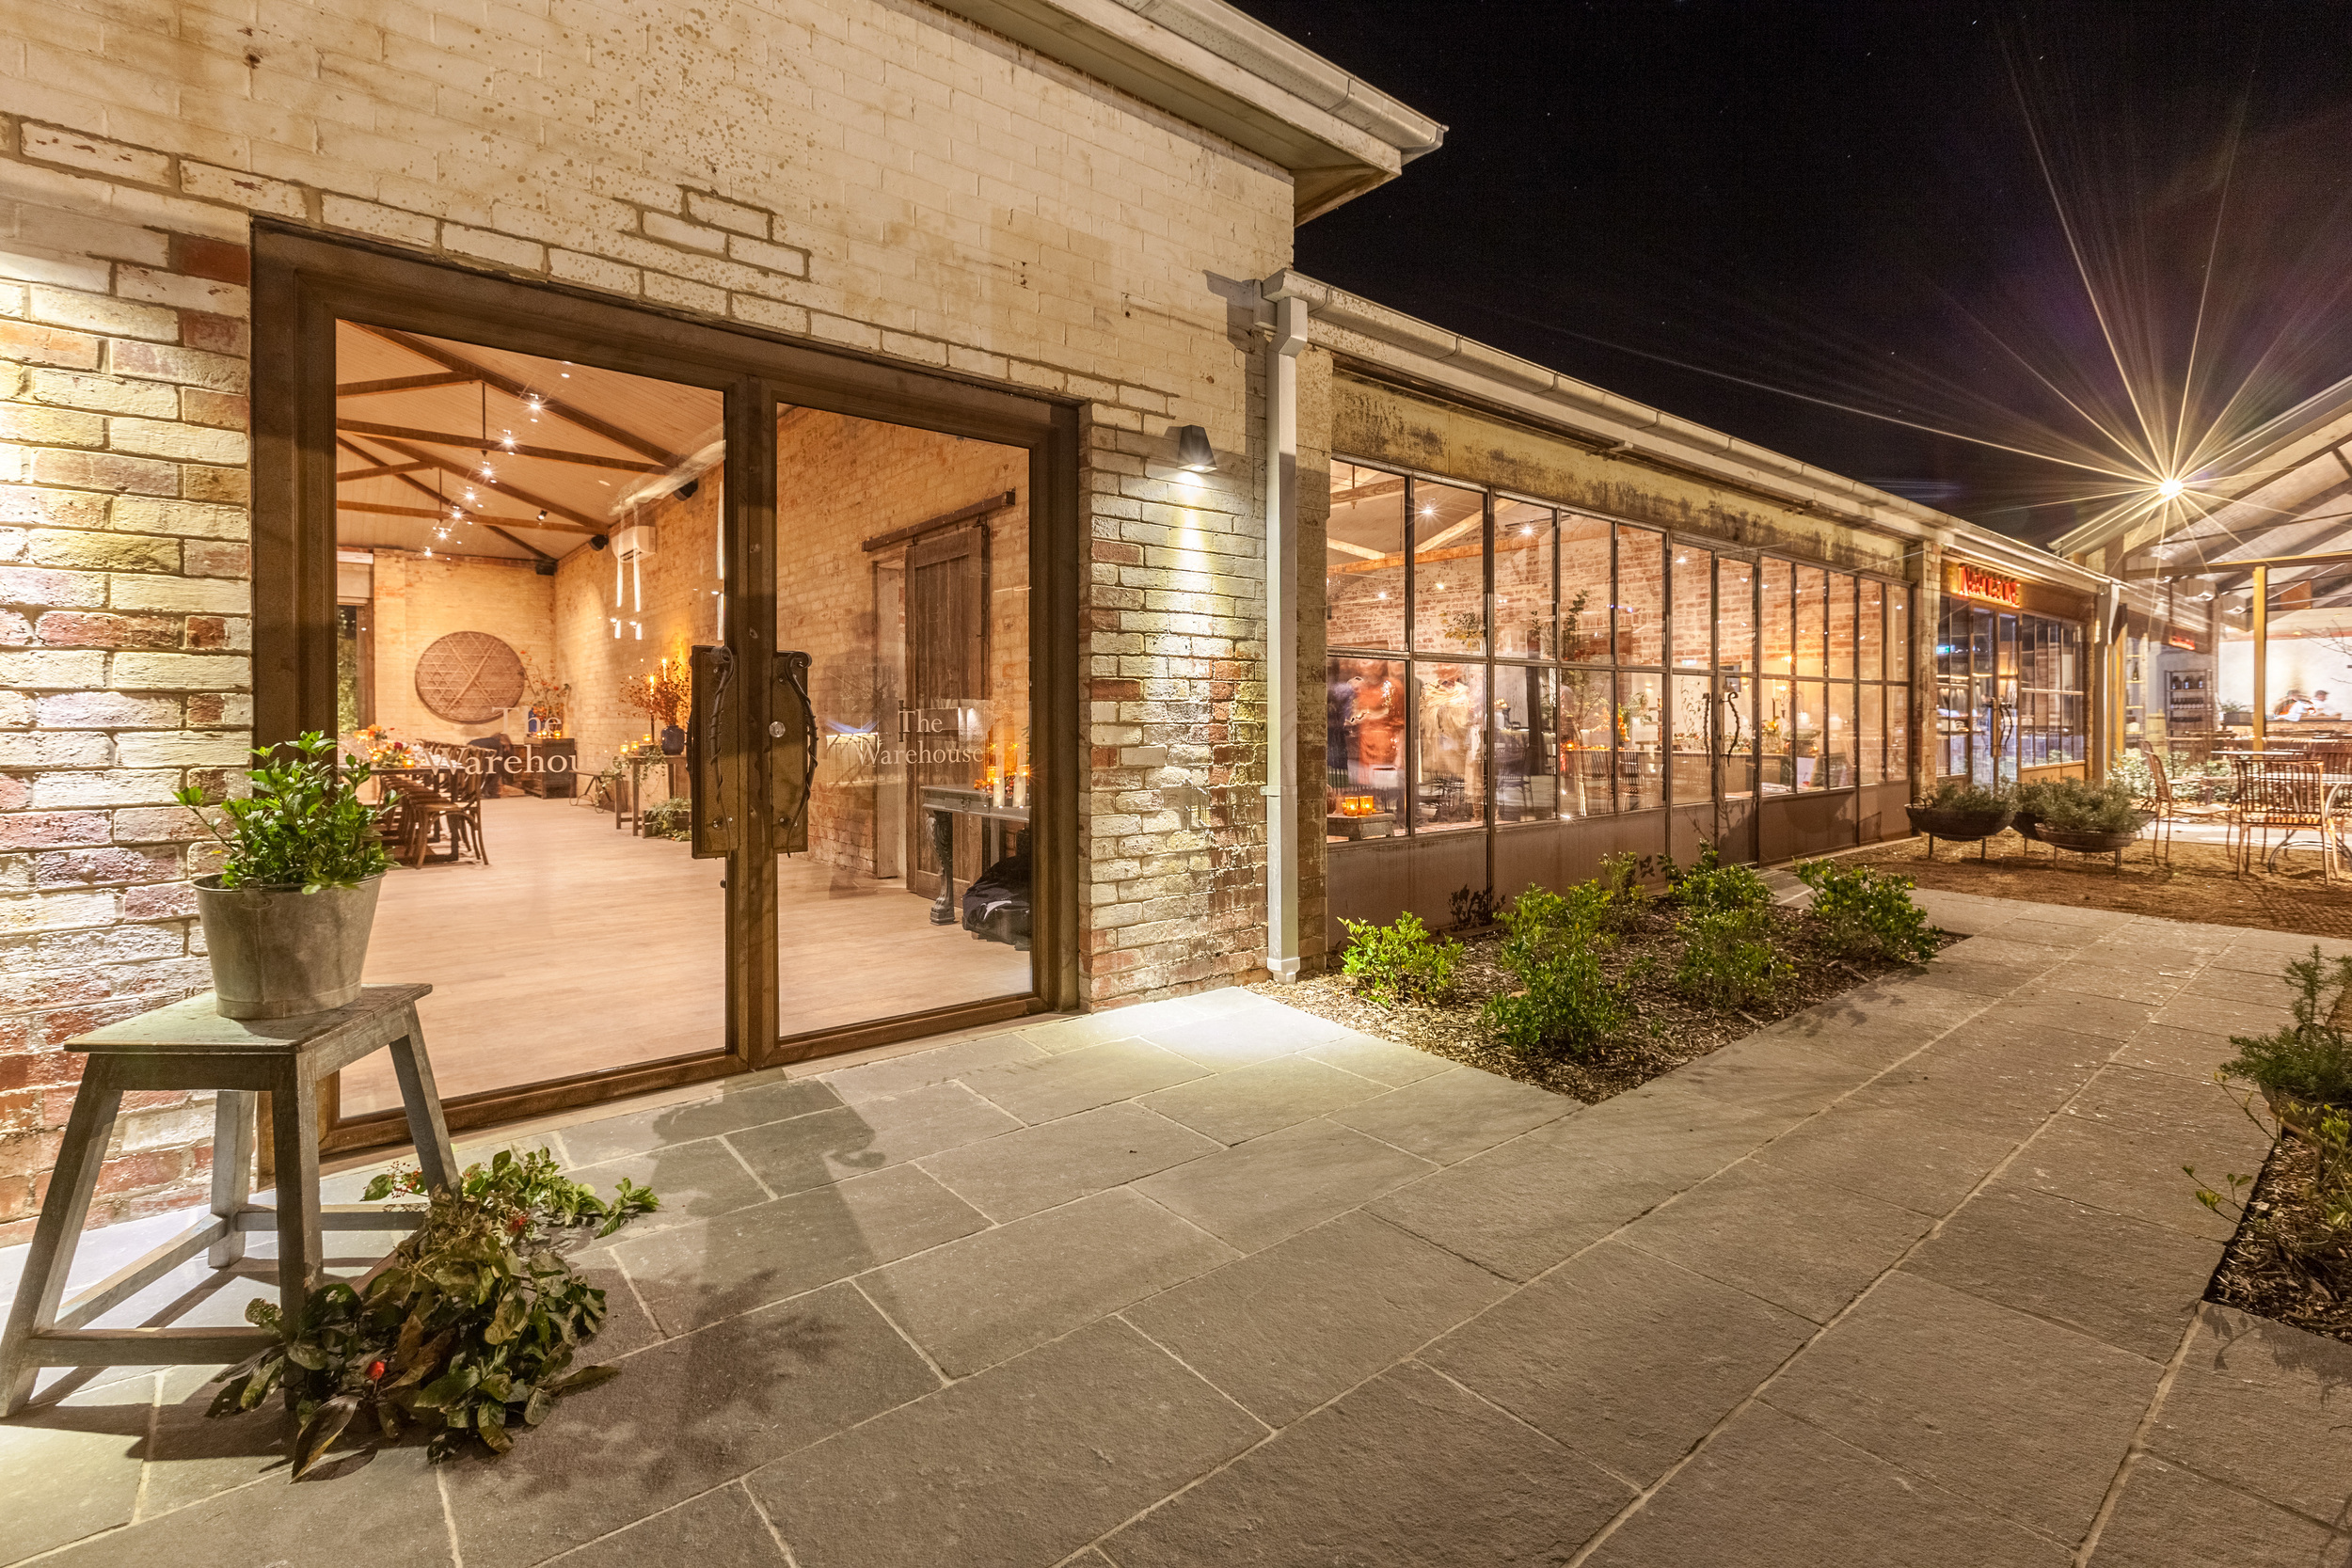 meletos private functions venue in the yarra valley.jpg